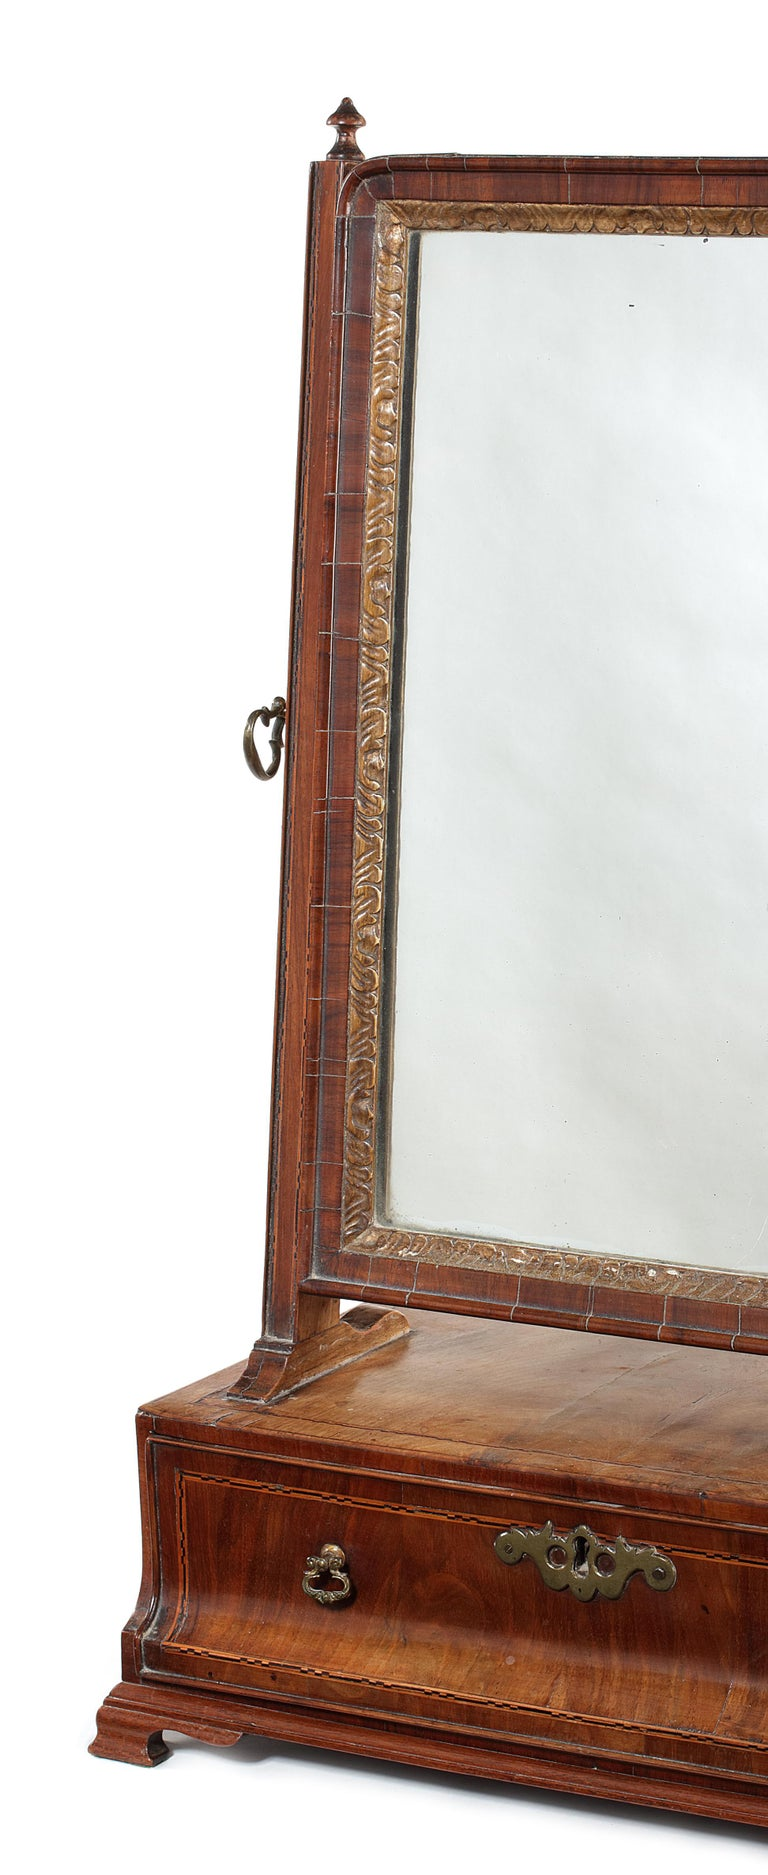 Queen Anne walnut and chequerbanded toilet mirror The replaced plate with a leaf carved slip and moulded swing frame, the rectangular base with concave drawer on later plinth and ogee bracket feet, 41cm wide, 22cm deep, 63cm high.